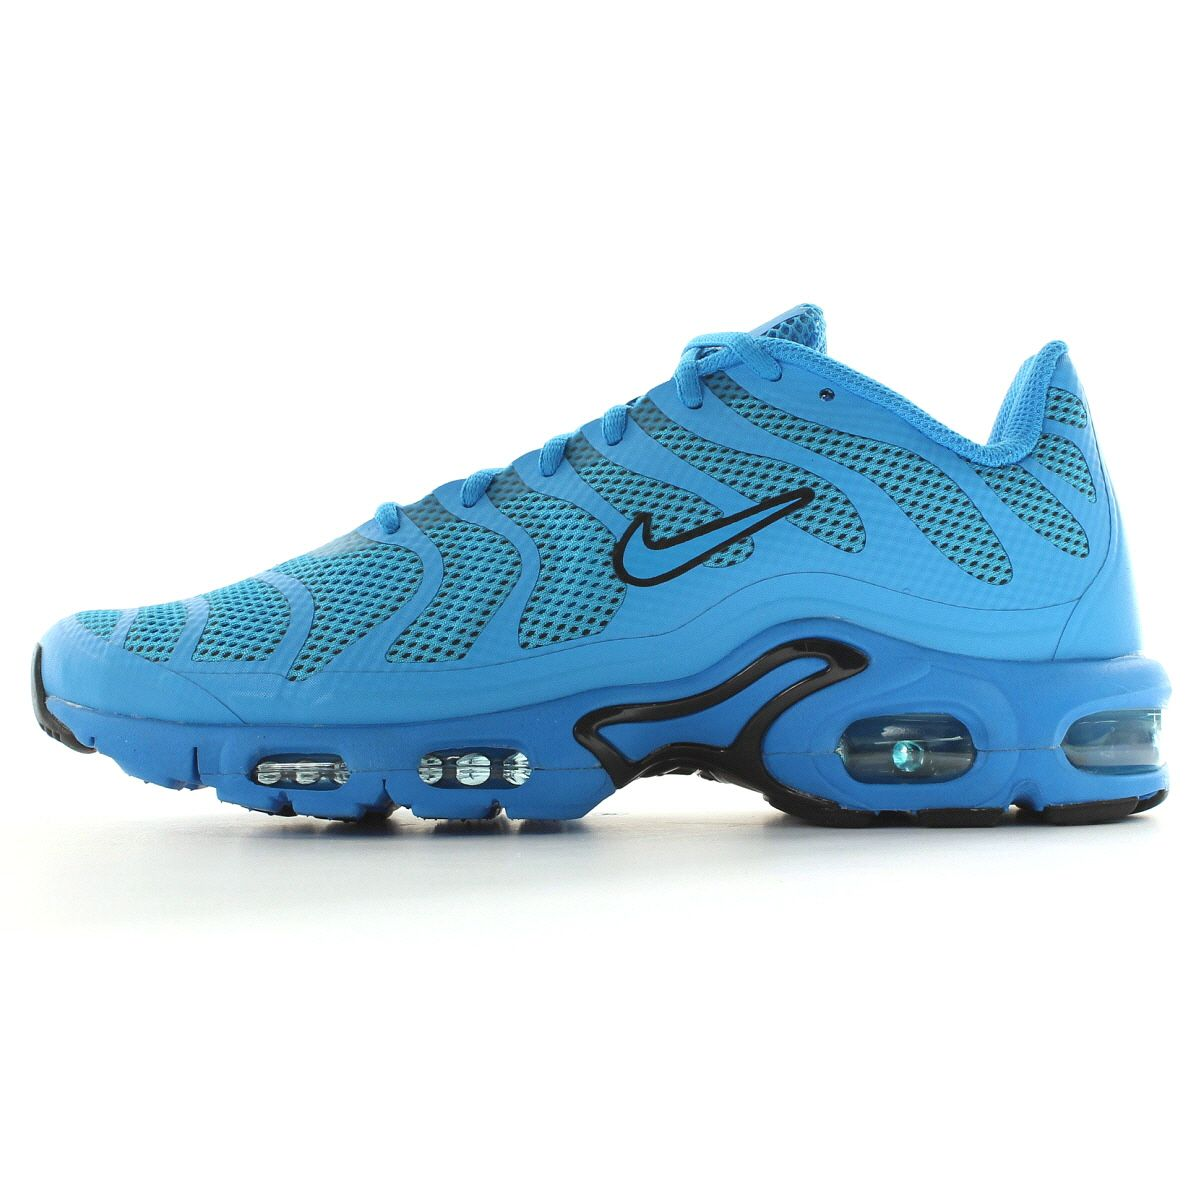 c3db4c2dba Nike Air max plus Fuse (requin) | Nike and etc shoes in 2019 | Nike ...